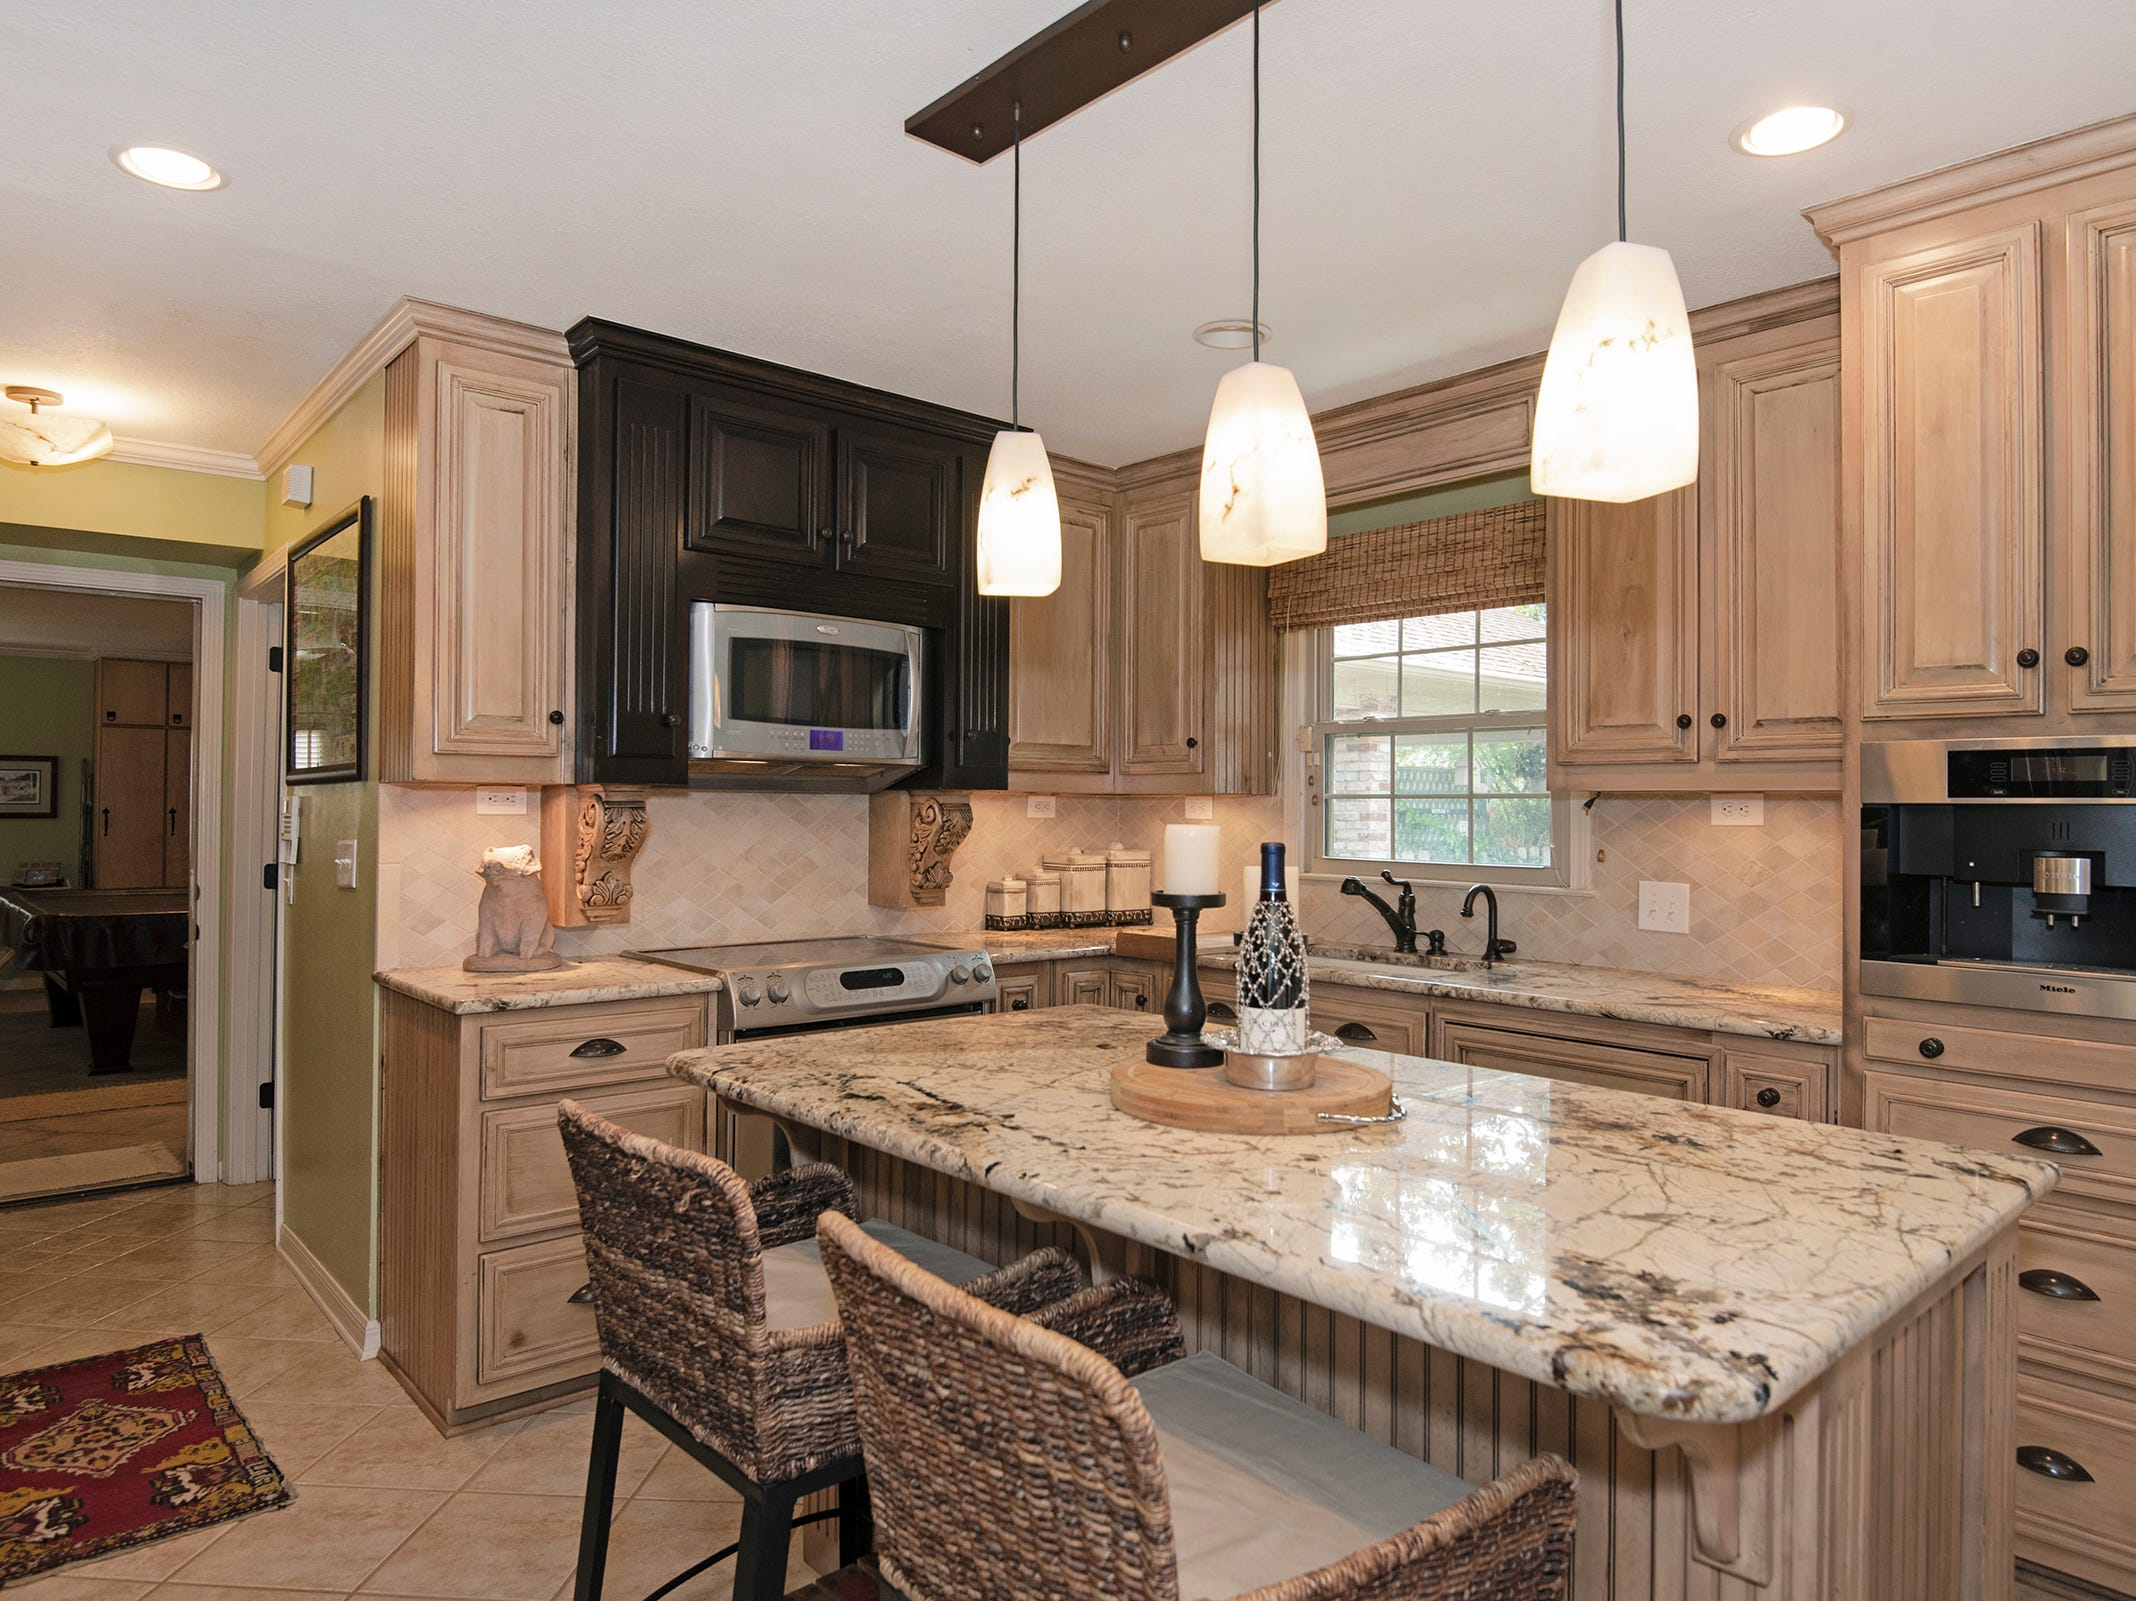 2625 Tambridge Circle, the spacious kitchen with an island.